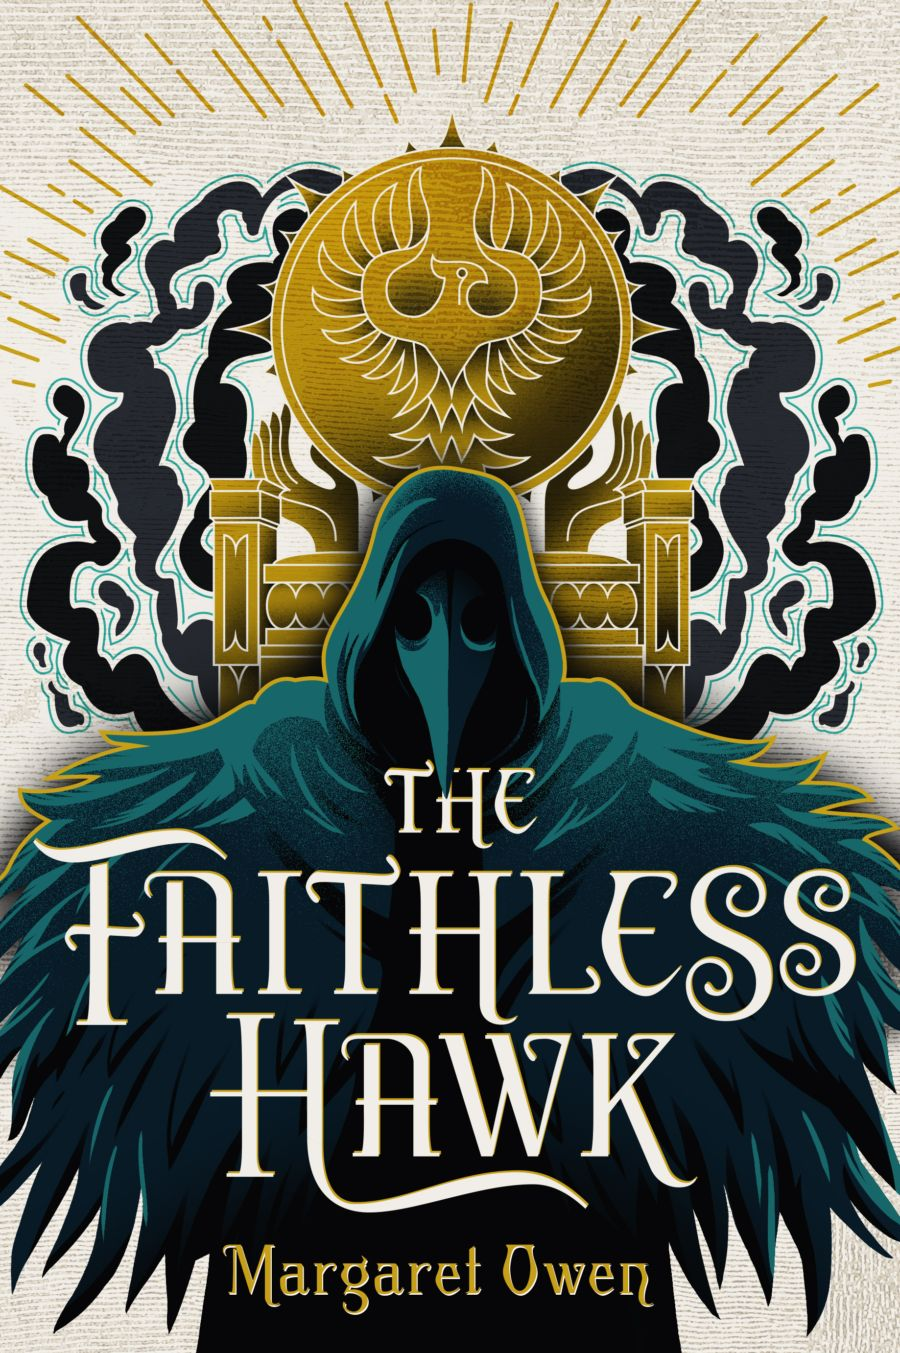 faithless hawk cover reveal